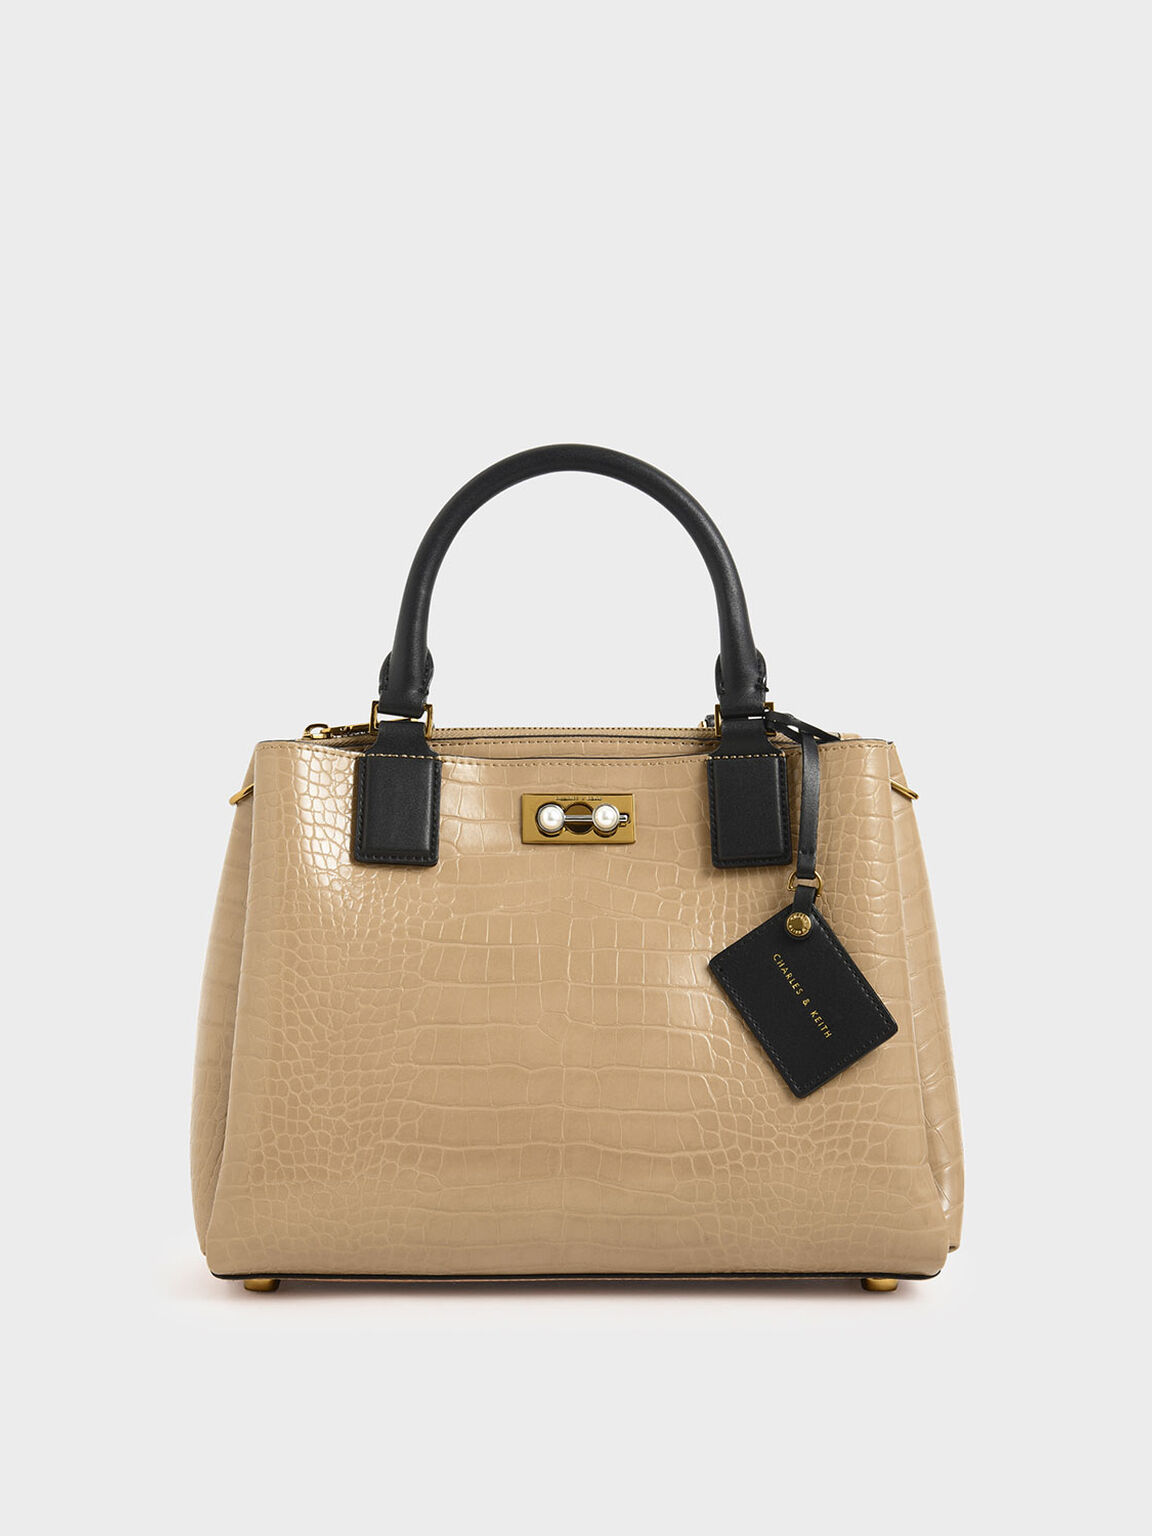 Croc-Effect Large Structured Bag, Beige, hi-res